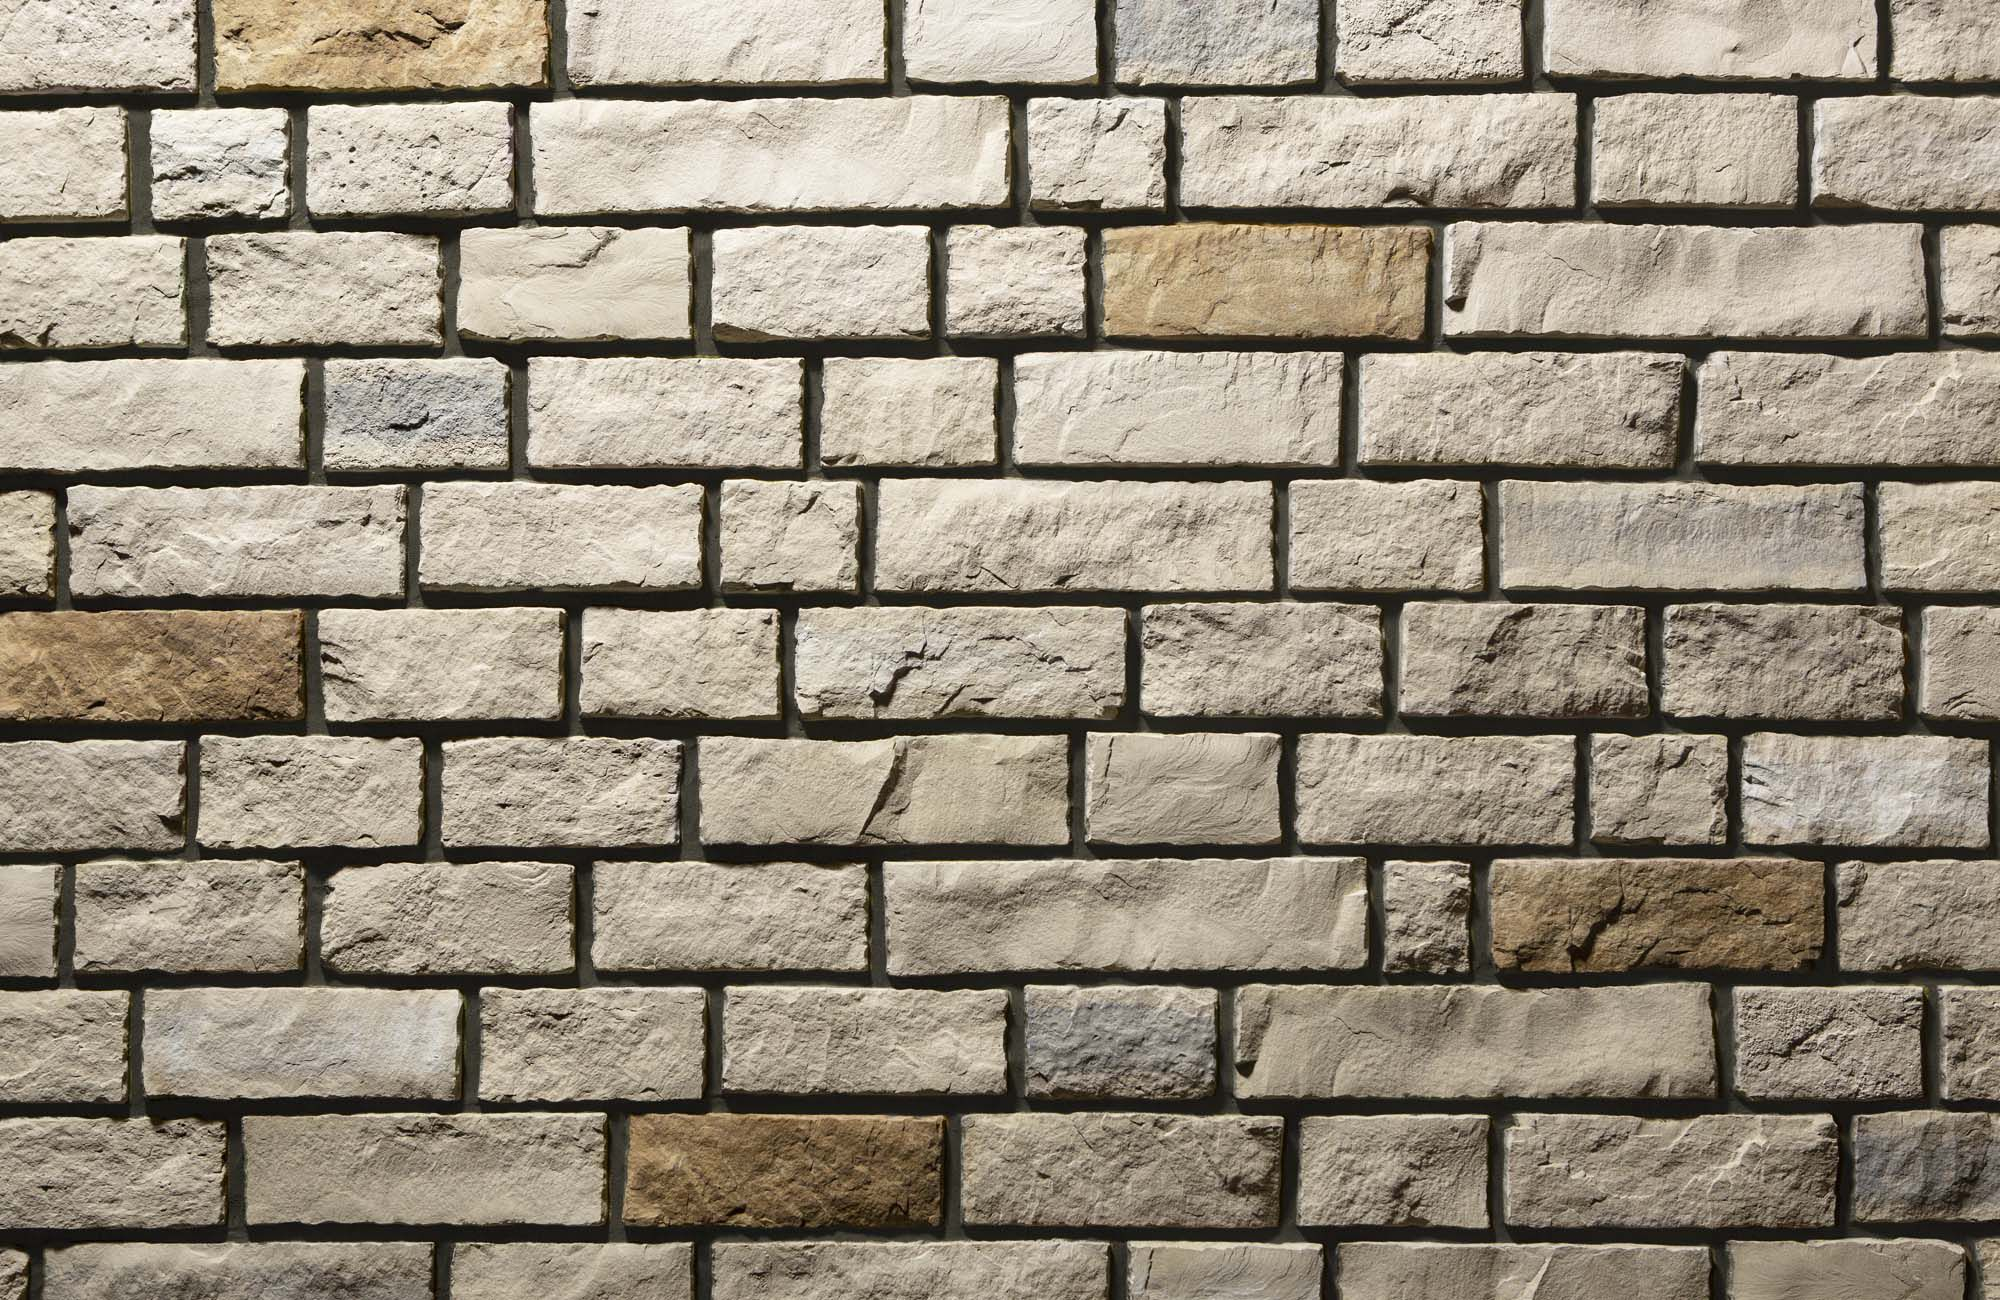 Thin Stone Veneer - Using Grout to compliment